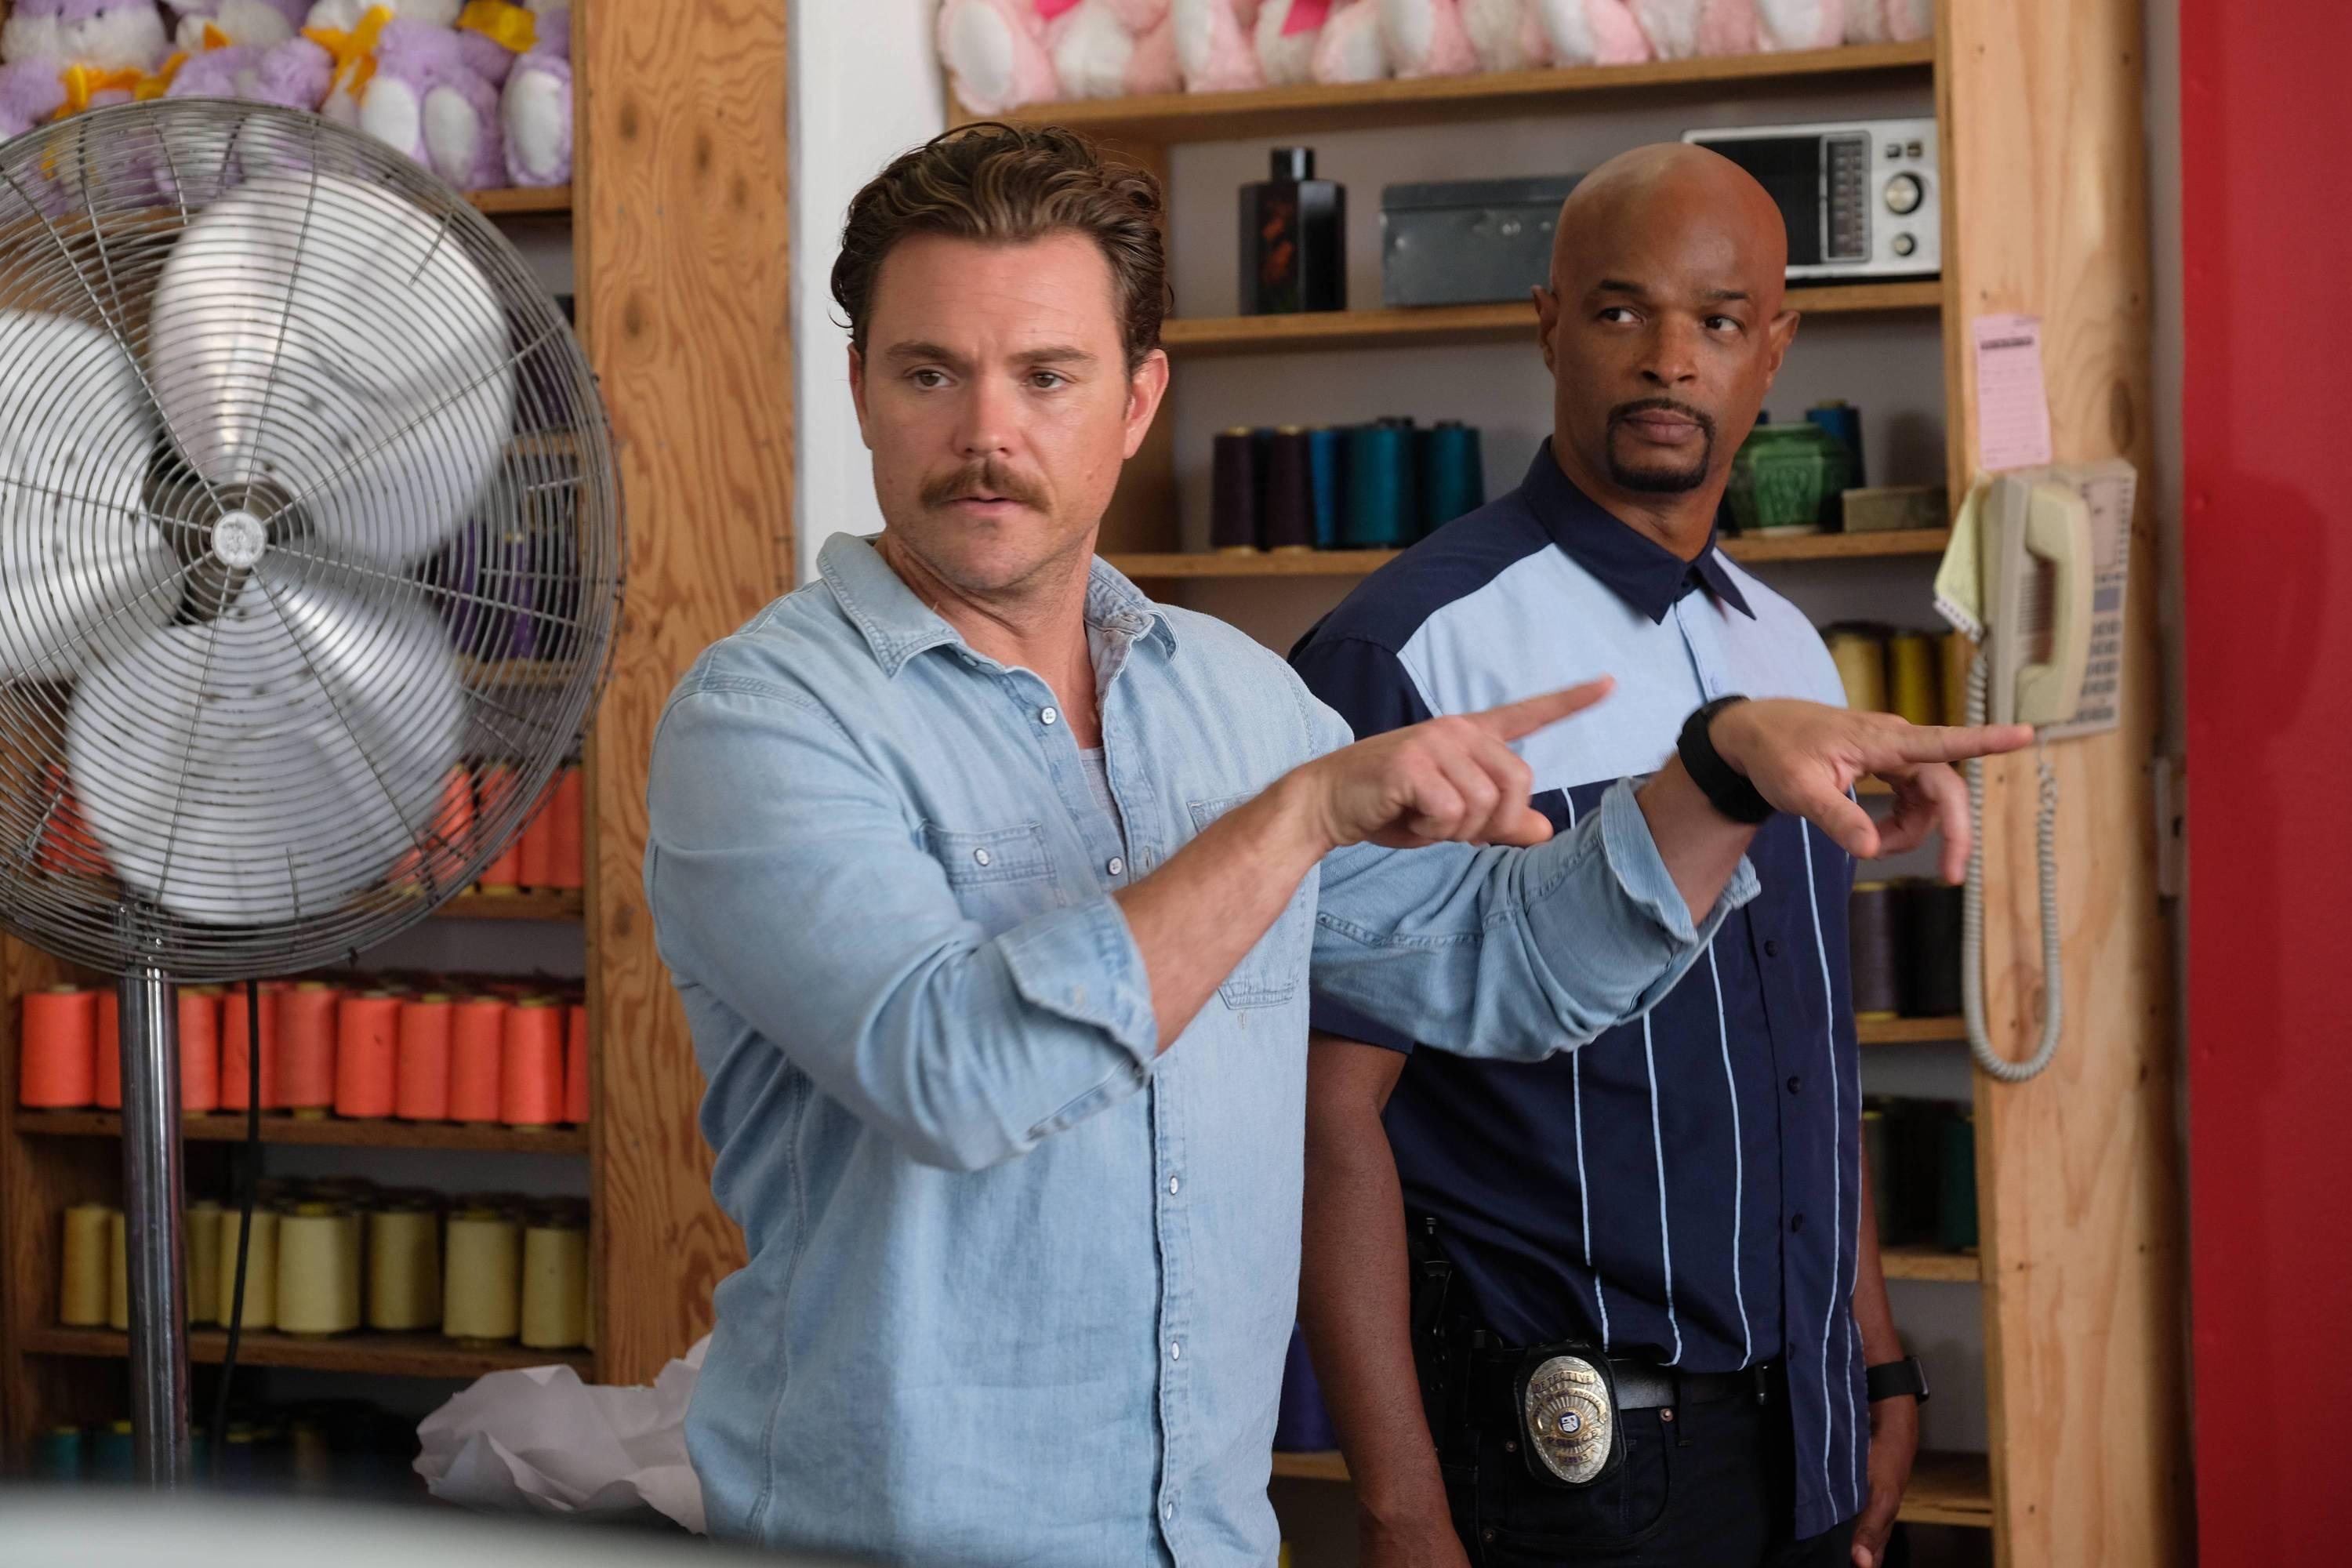 Clayne Crawford as Riggs and Damon Wayans as Murtaugh